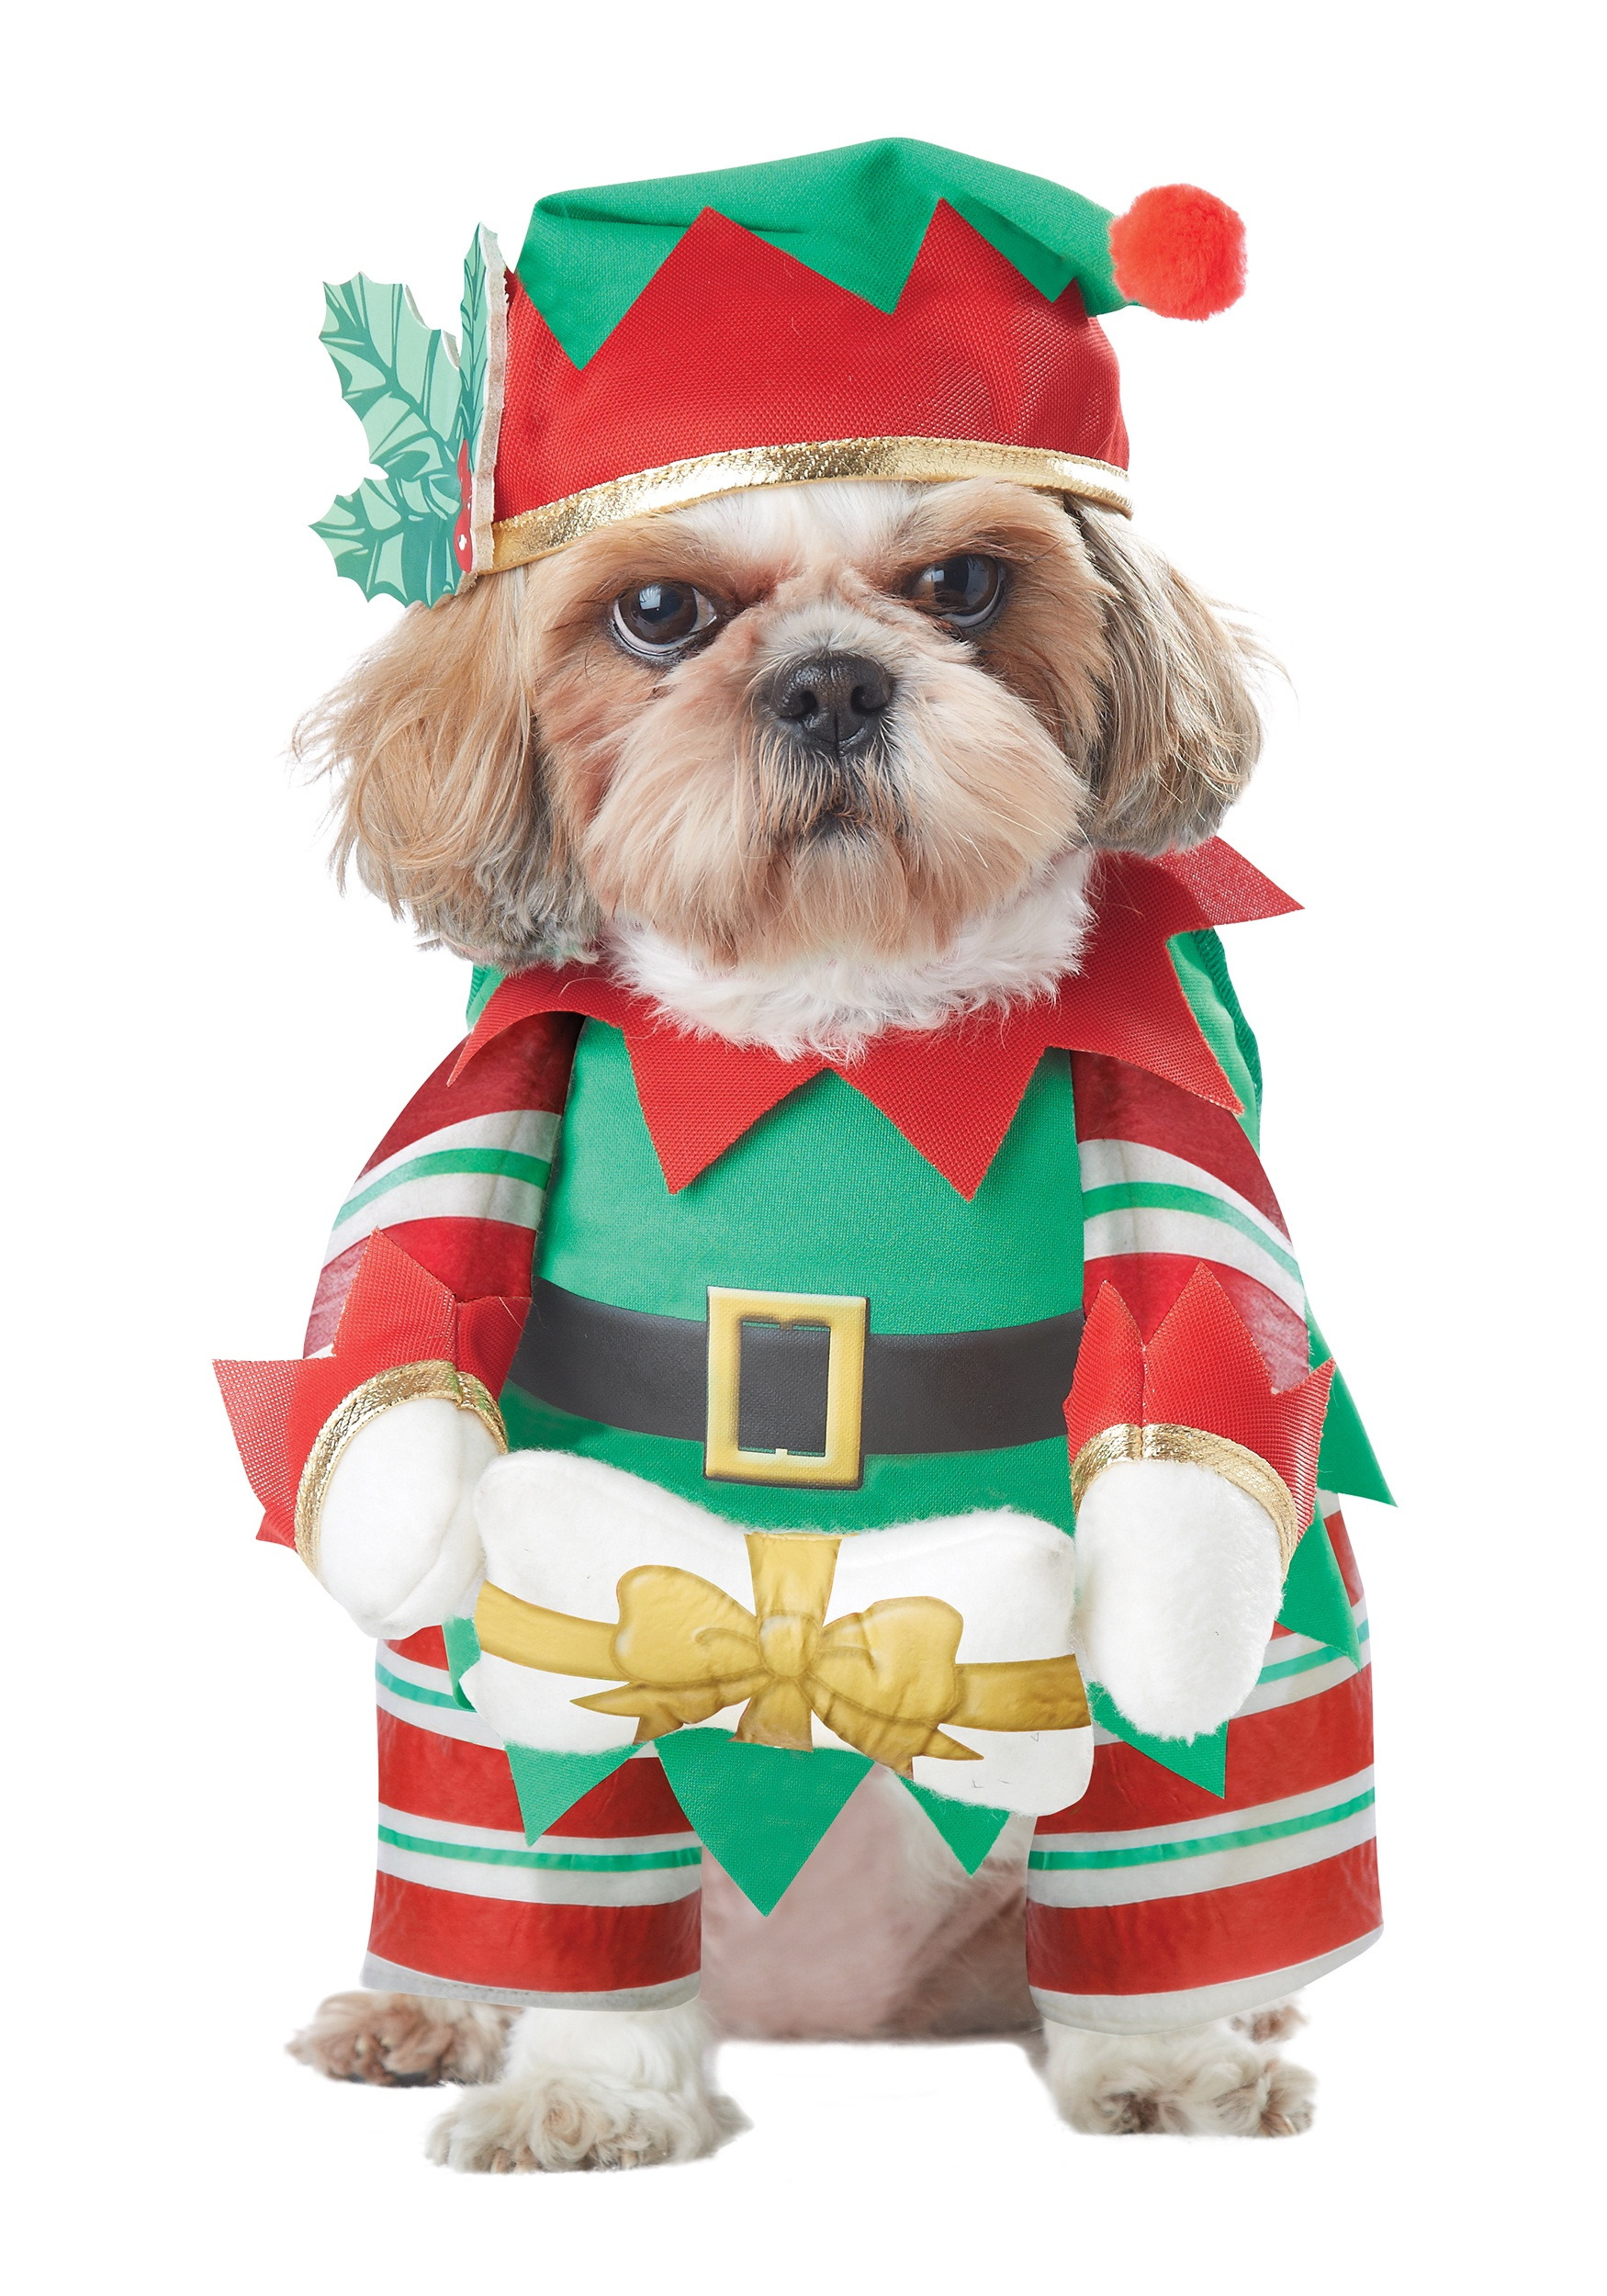 Dog Elf Costume photo - 1